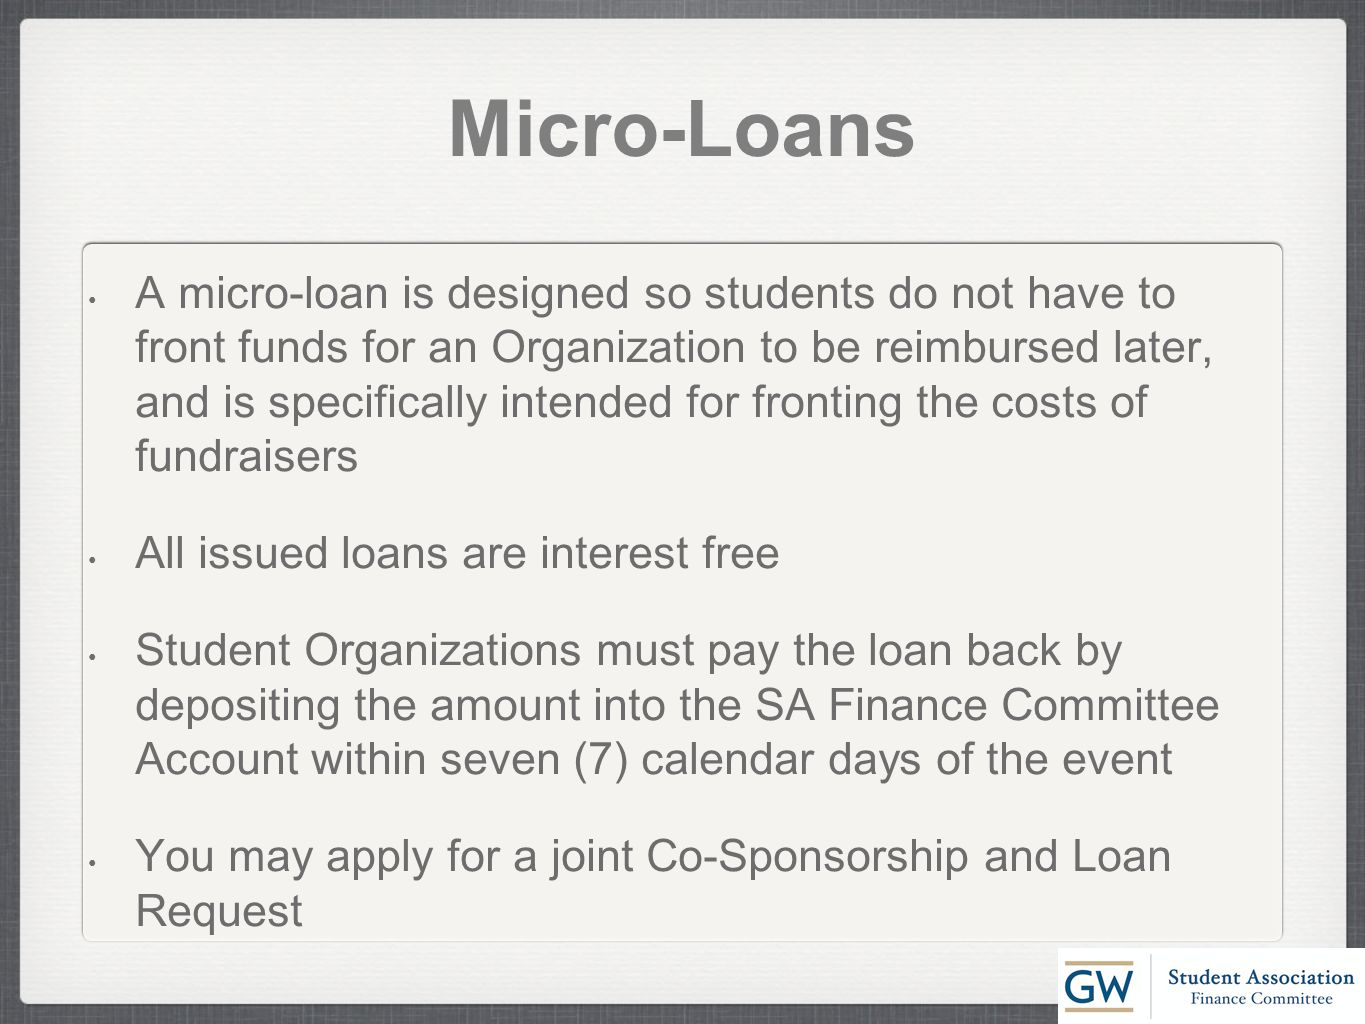 Micro-Loans A micro-loan is designed so students do not have to front funds for an Organization to be reimbursed later, and is specifically intended for fronting the costs of fundraisers All issued loans are interest free Student Organizations must pay the loan back by depositing the amount into the SA Finance Committee Account within seven (7) calendar days of the event You may apply for a joint Co-Sponsorship and Loan Request